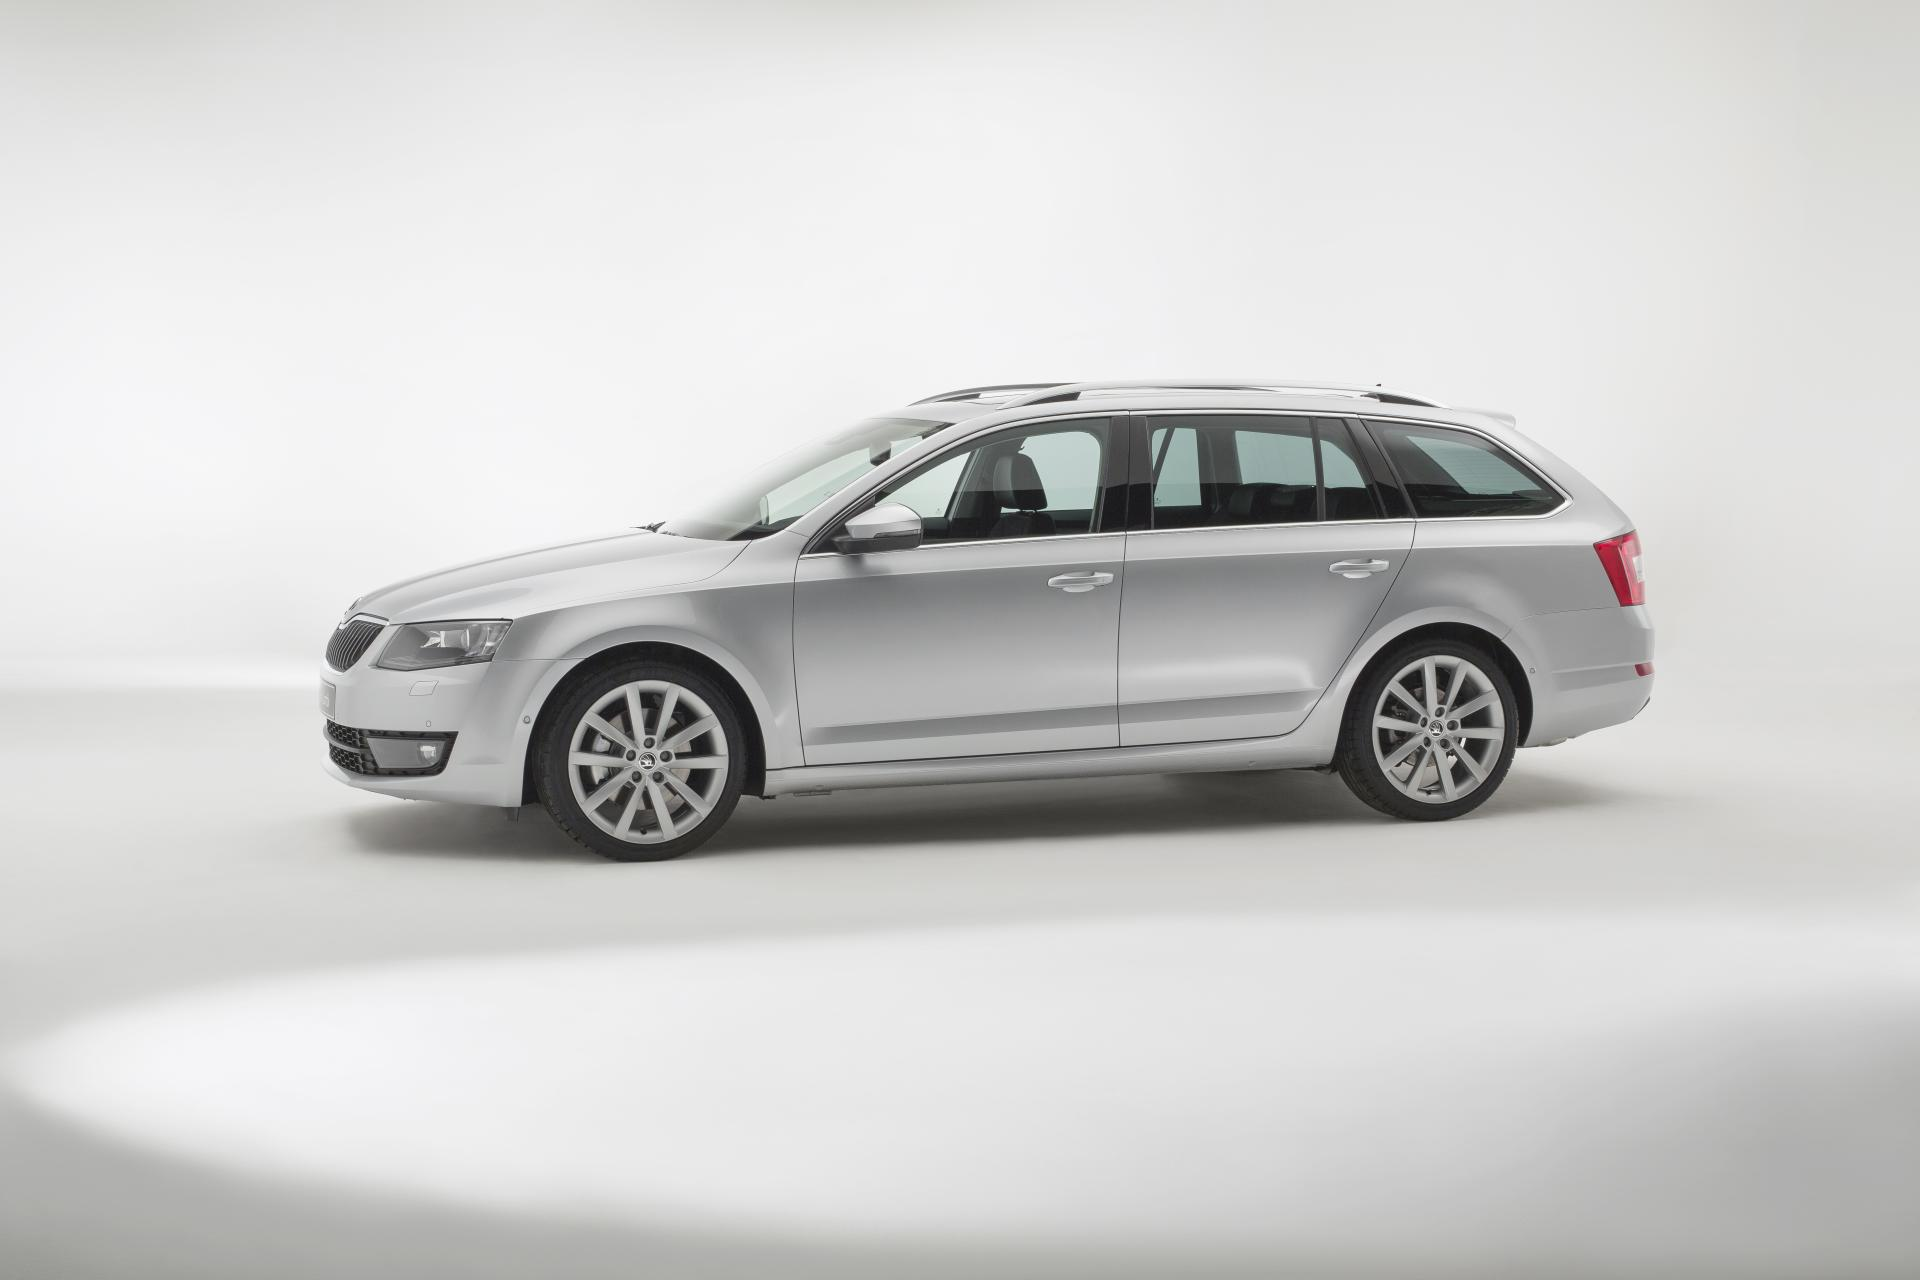 2014 skoda octavia combi news and information. Black Bedroom Furniture Sets. Home Design Ideas